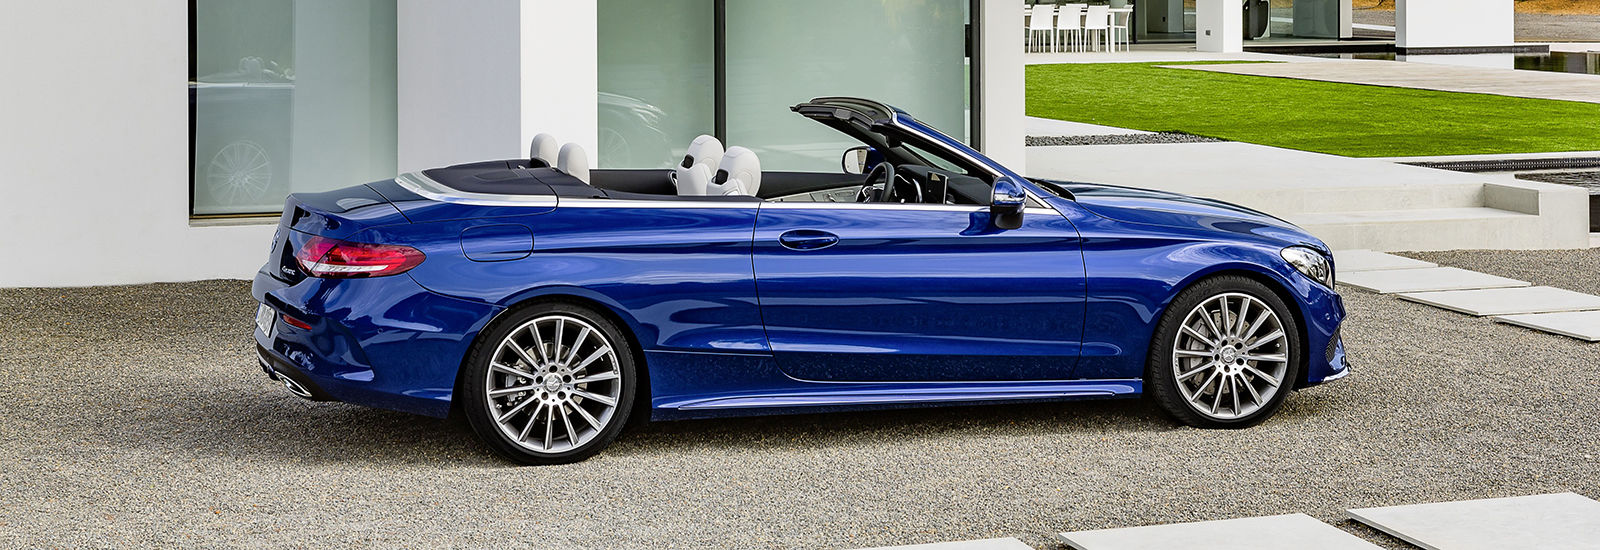 mercedes c class cabriolet price specs release date carwow. Black Bedroom Furniture Sets. Home Design Ideas